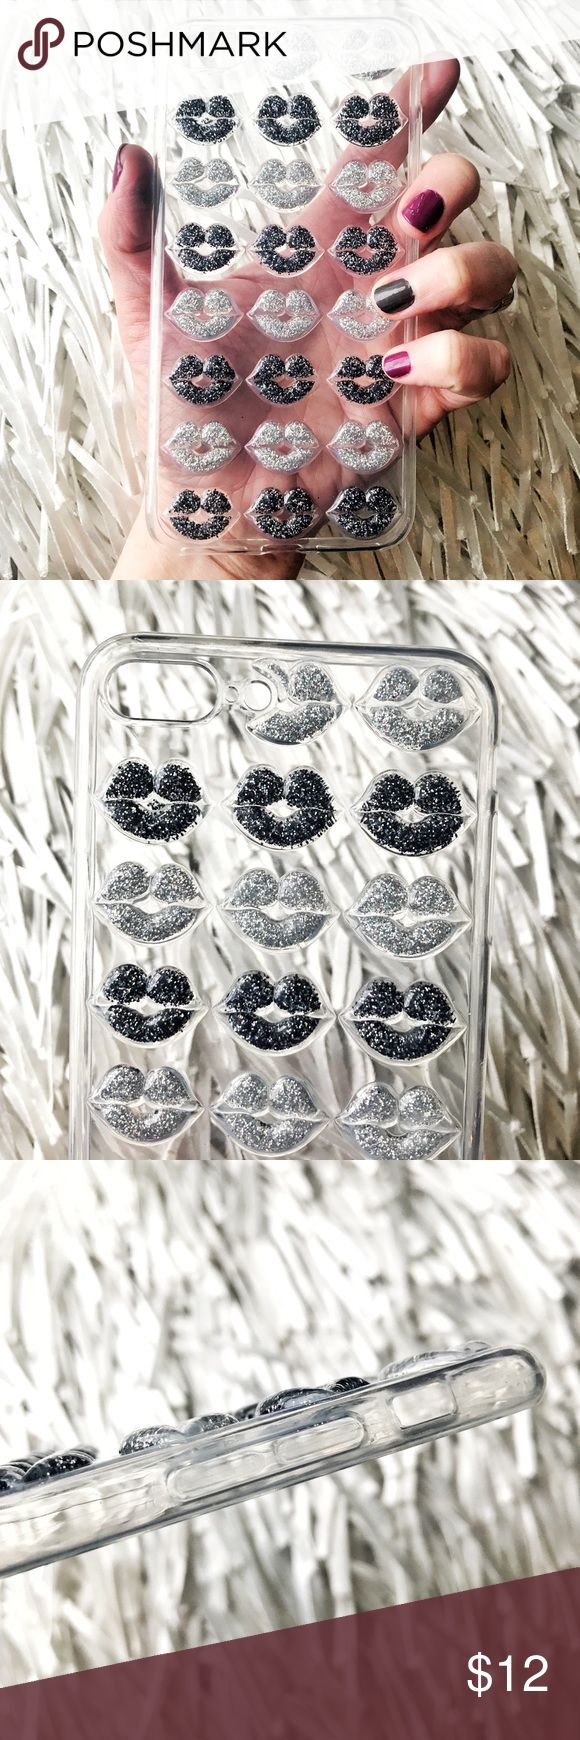 NEW iPhone 7 Plus/8 Plus SOFT Glitter Lips Case ▪️Fits iPhone 7 Plus or 8 Plus Models     ▪️High Quality Soft TPU - Thick & Shock-Resistant     ▪️Same or Next Business Day Shipping ! Accessories Phone Cases